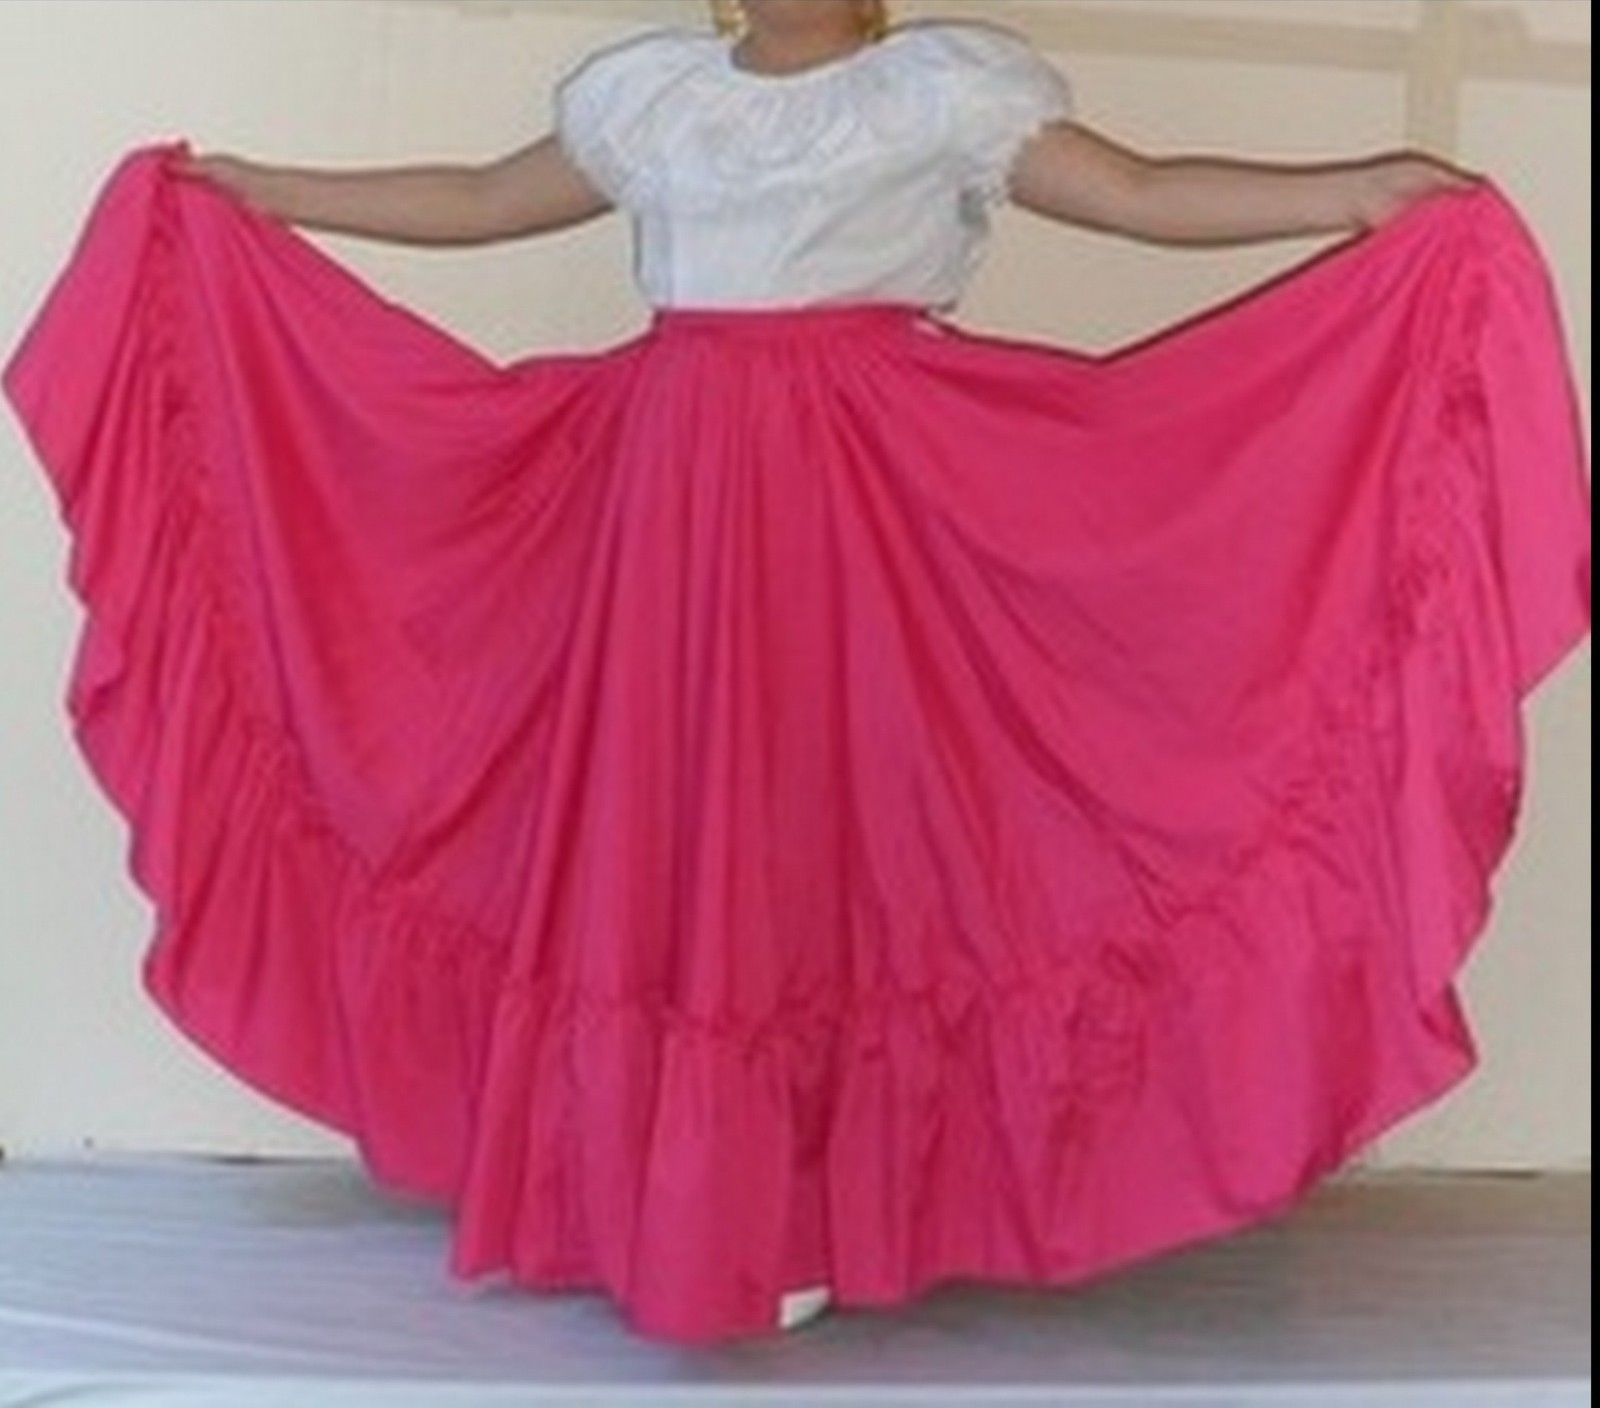 Primary image for Womens Full Super Wide Skirt One Size Waist For Folkloric Dances New Handmade